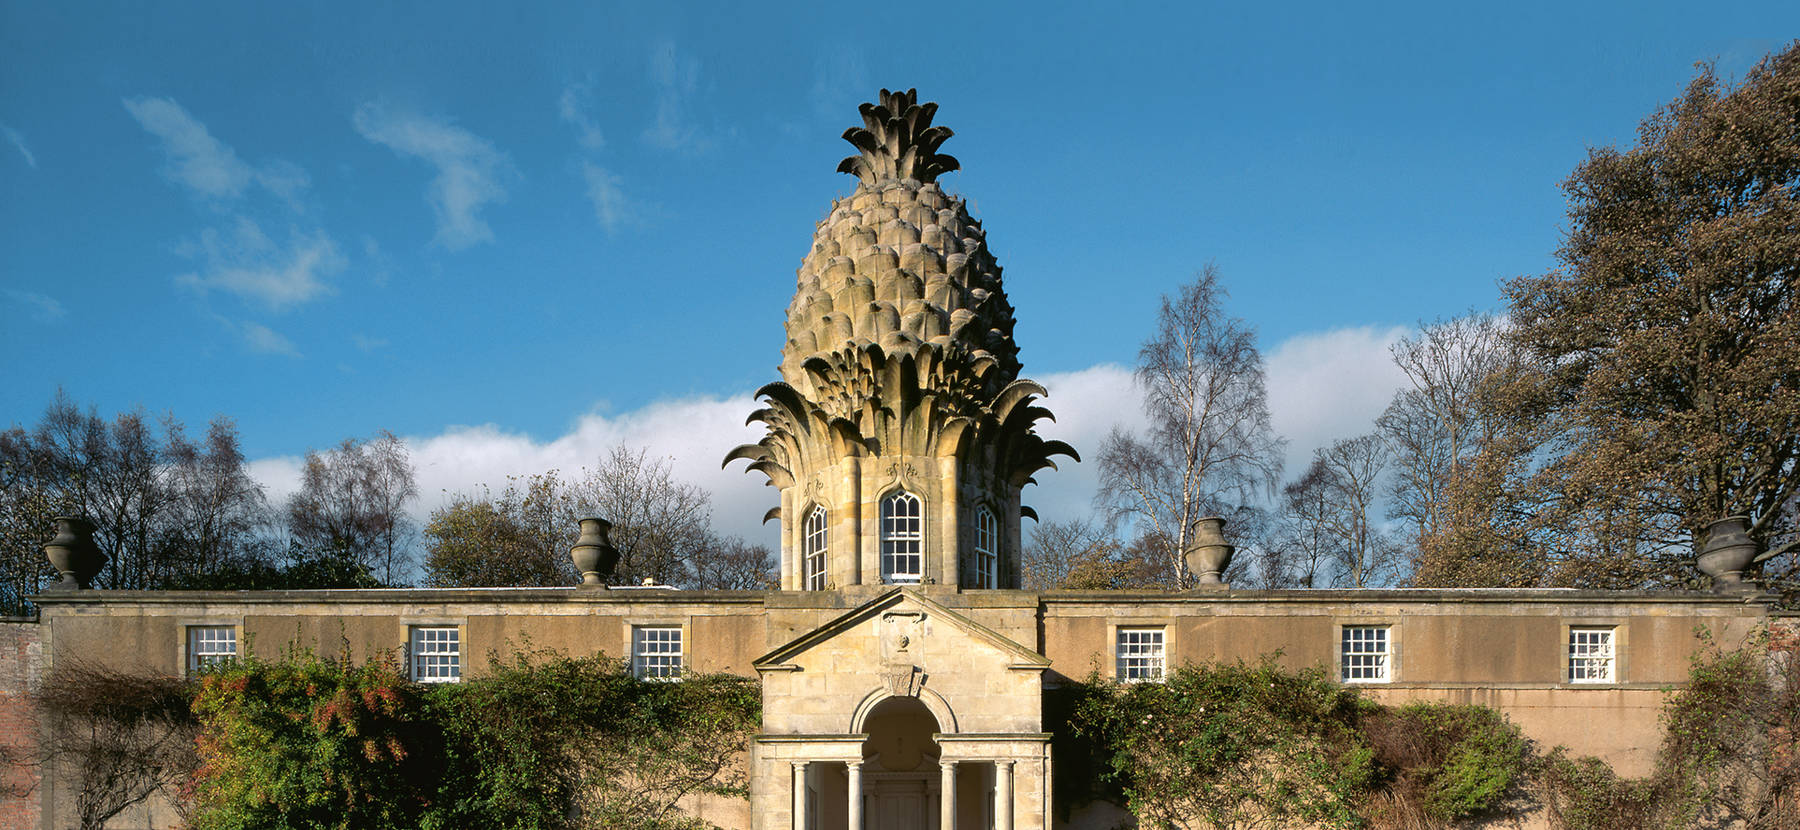 main_pineapple_exterior_0218_3b94b423780d31ed0ac08f24293947fb